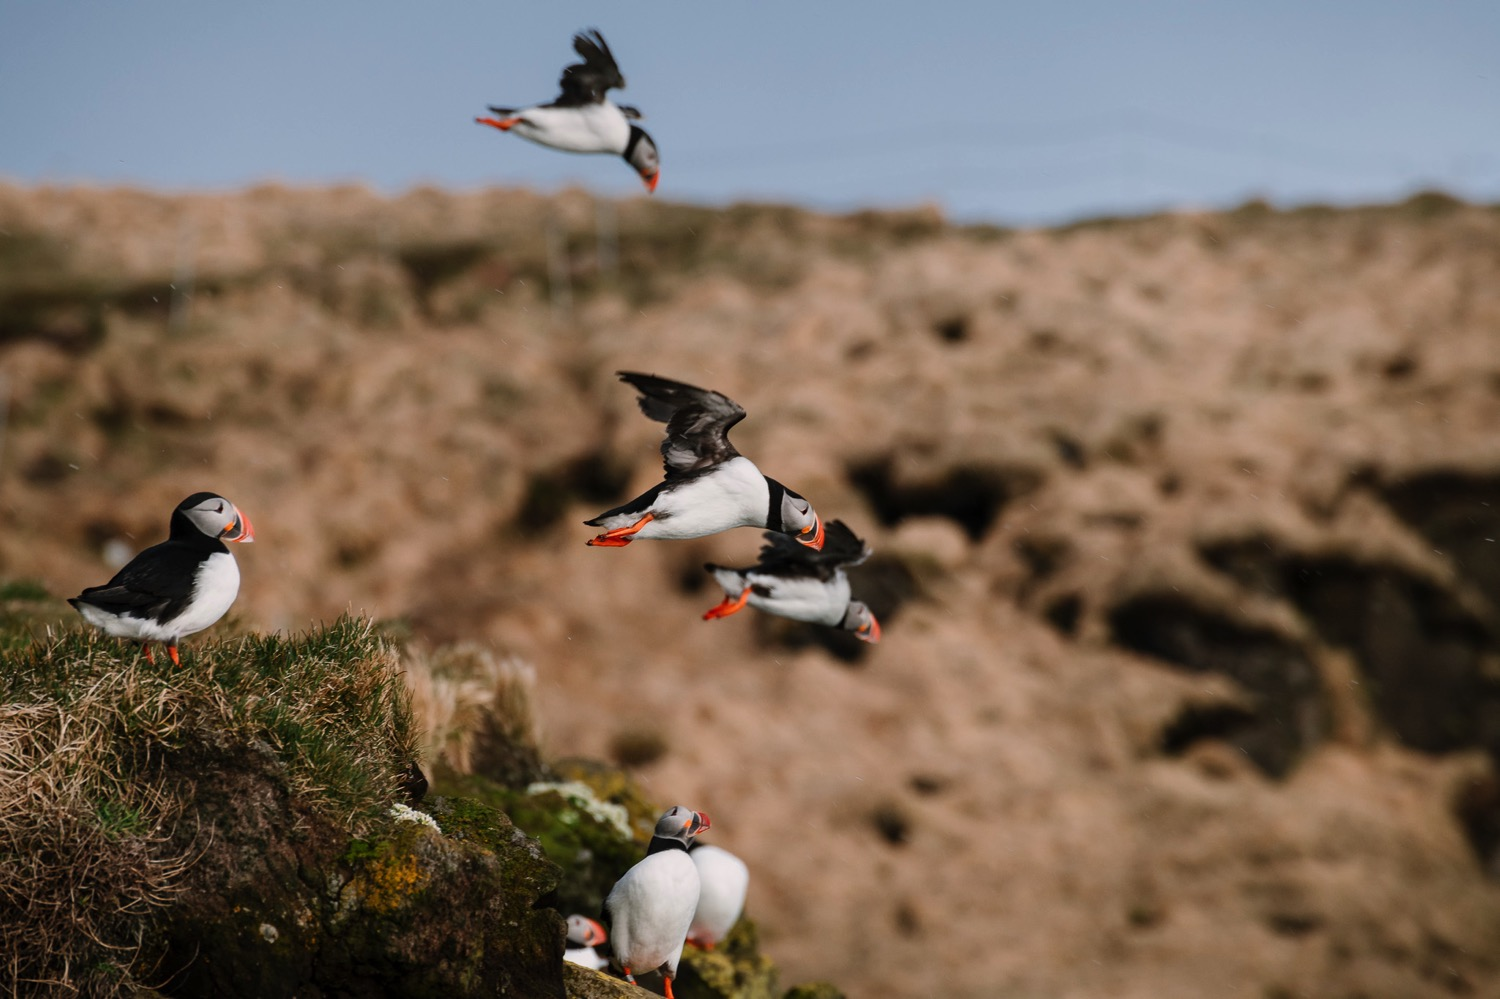 Puffins in flight - Iceland Blog Part IIPhoto by Trung Hoang Photography |www.trunghoangphotography.com | San Francisco Bay Area Wedding Photographer